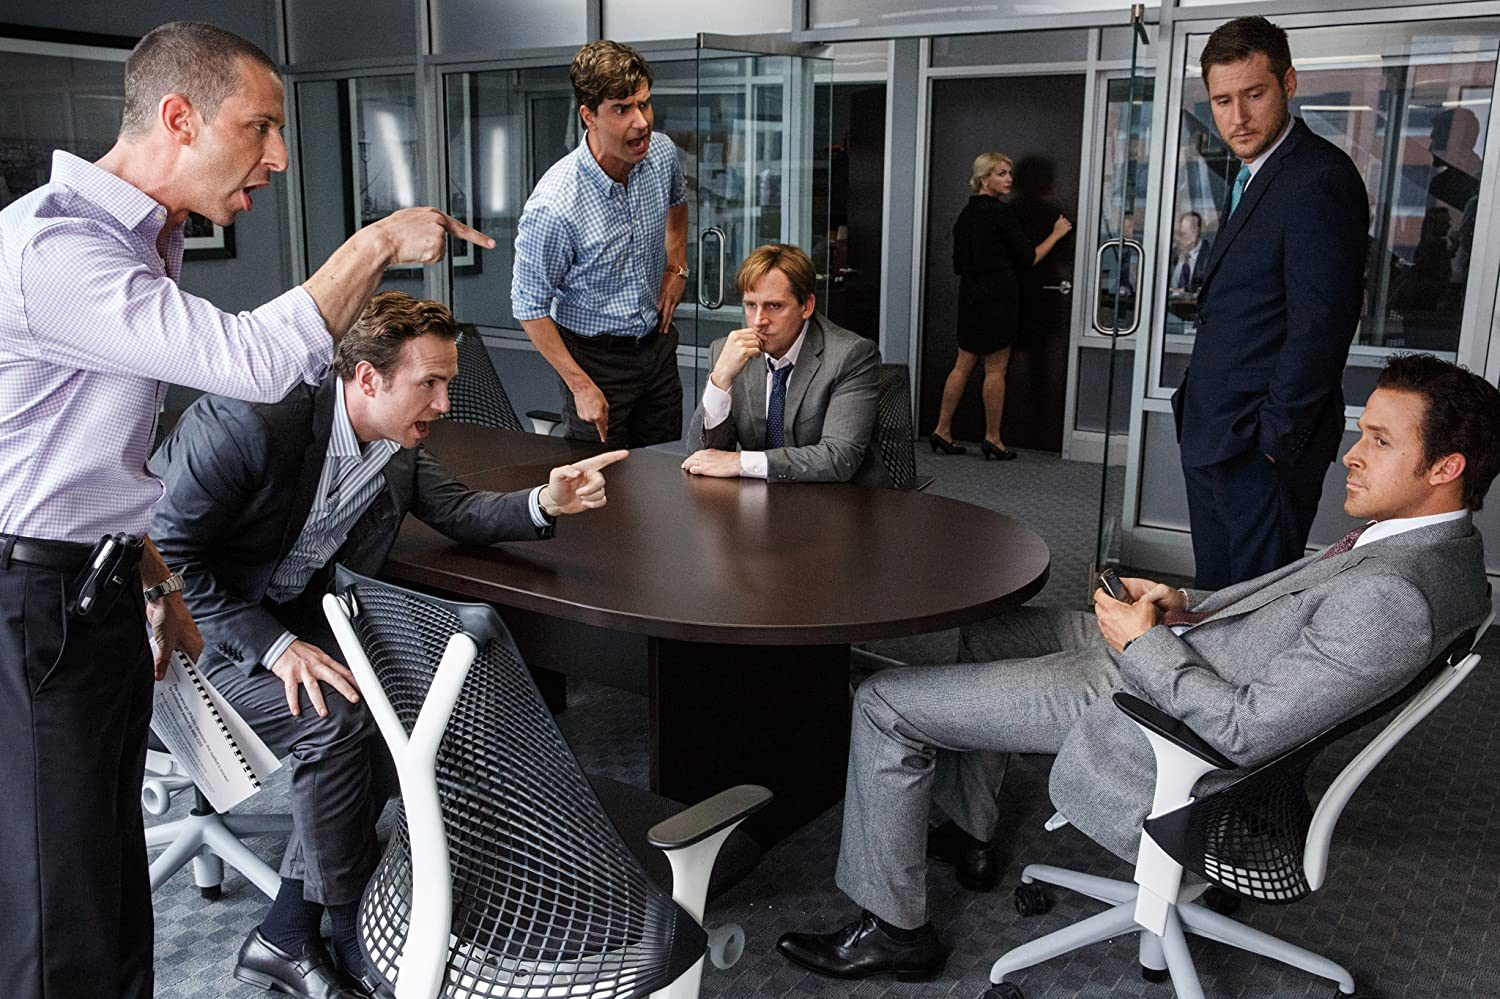 Denial During a Crisis: The Big Short